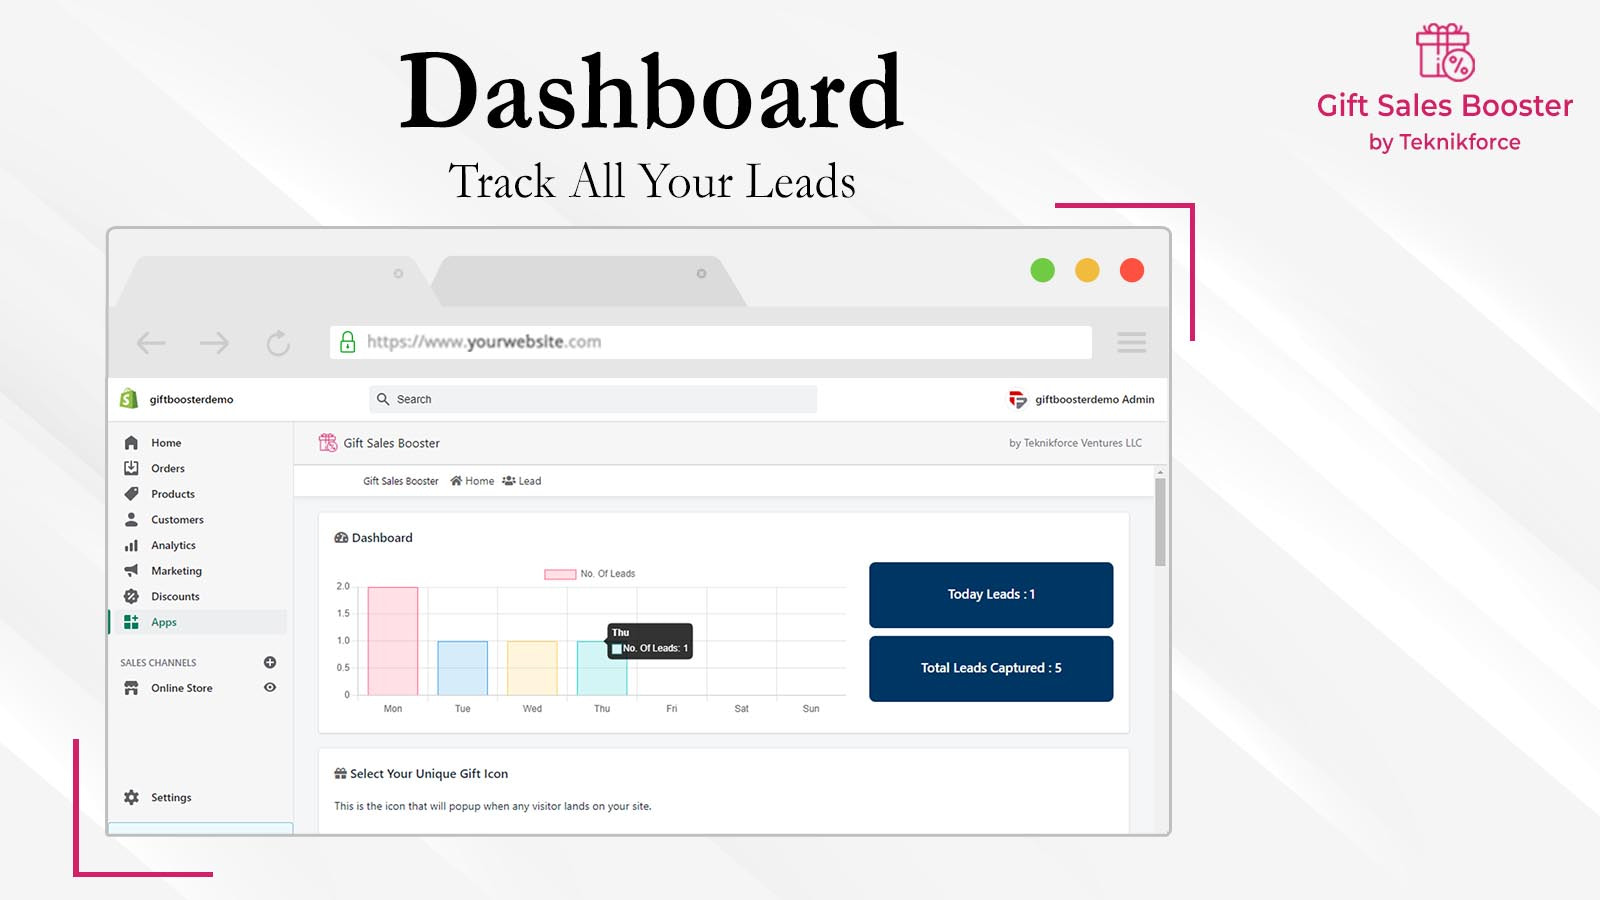 Gift Sales Booster lead dashboard